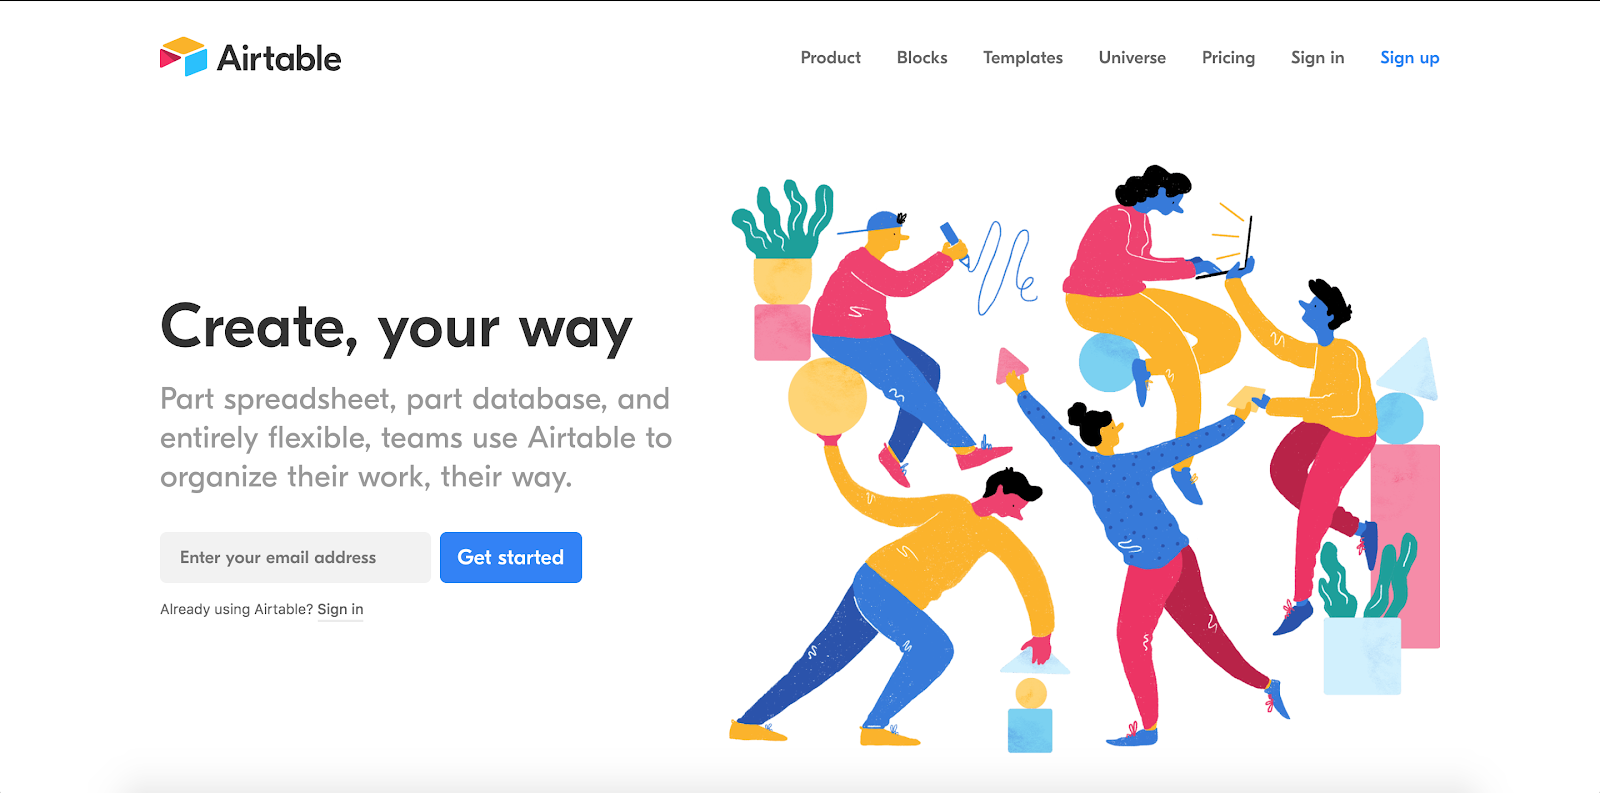 20 web design trends for 2019 | Webflow Blog